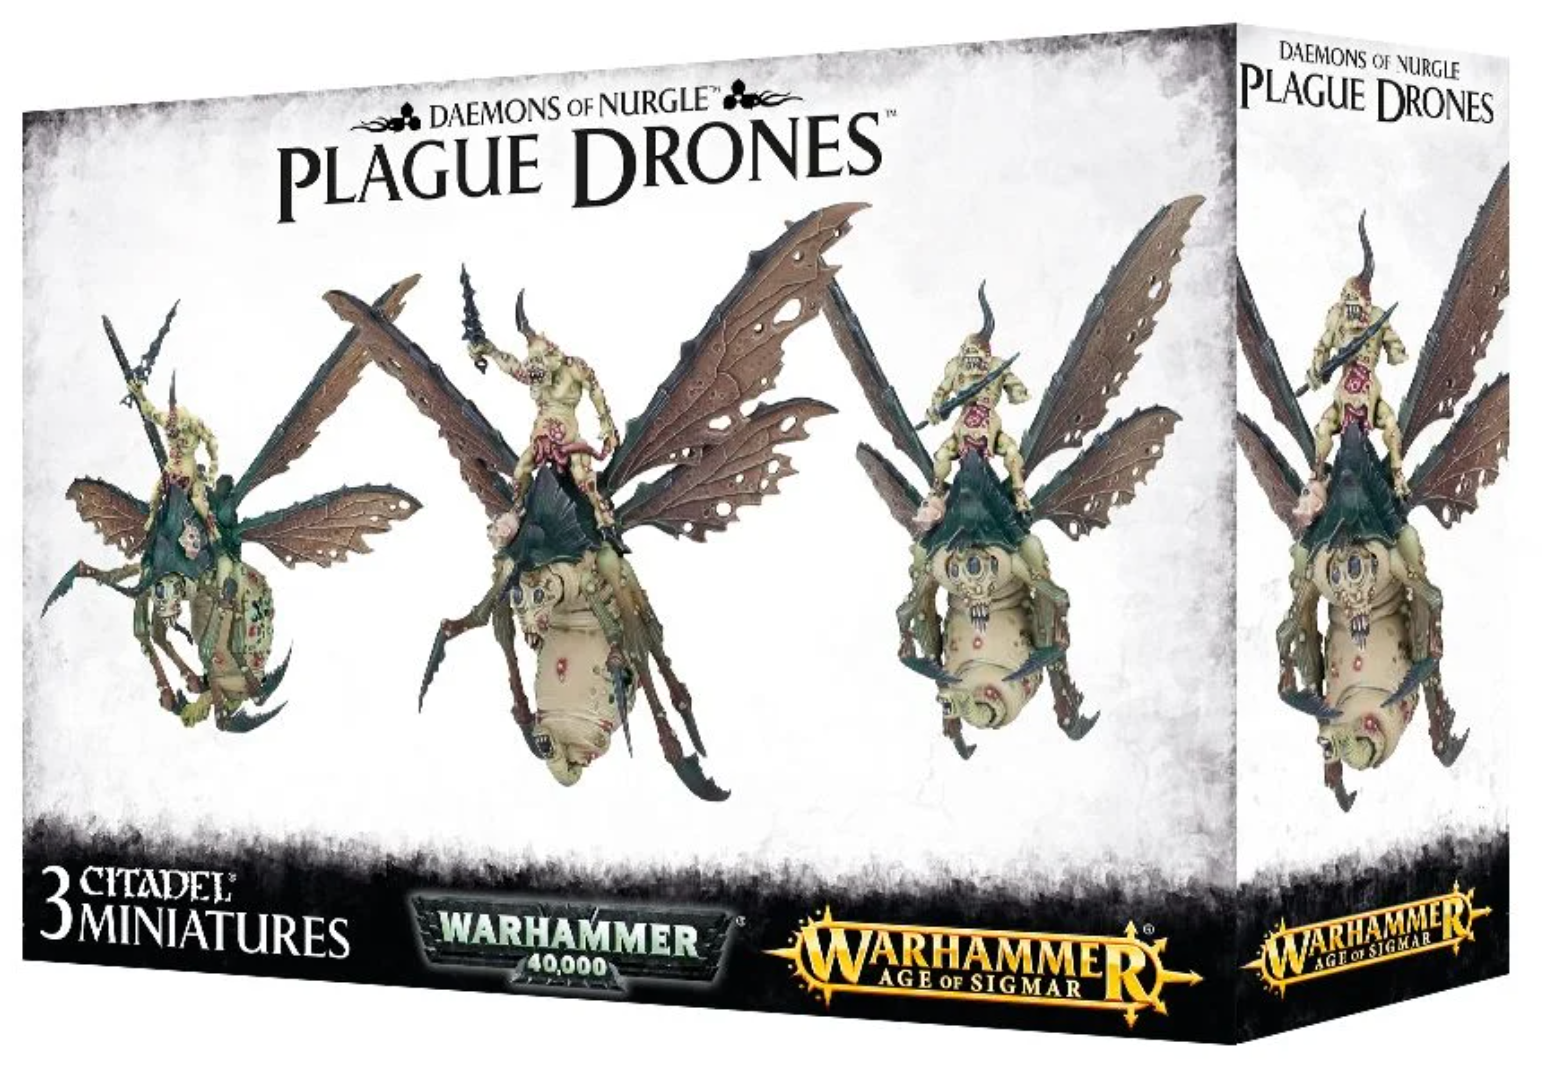 Demons of Nurgle Plague Drones | Mythicos